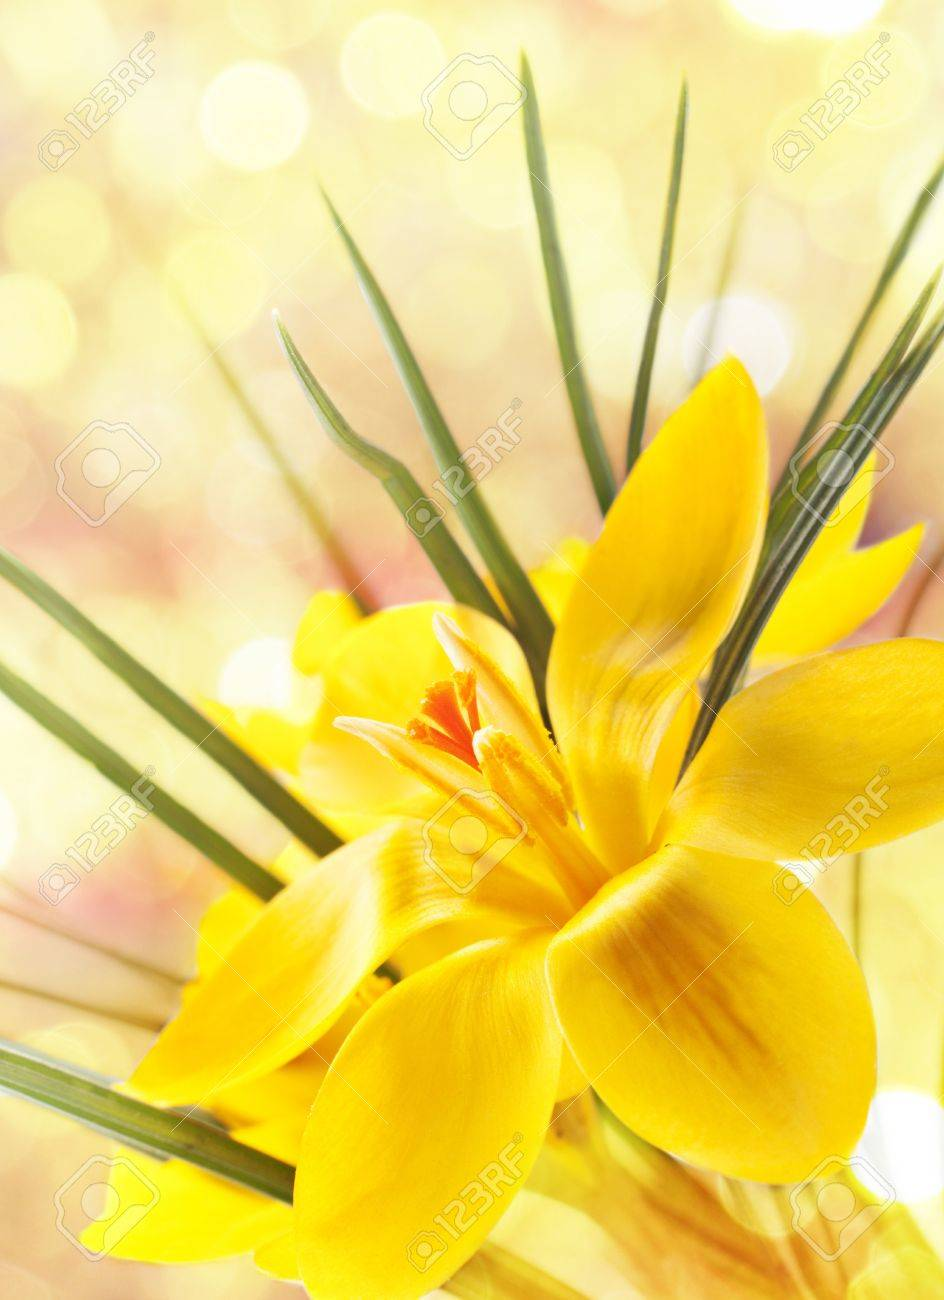 Nice Background For Your Design With A Yellow Crocus Flower Stock